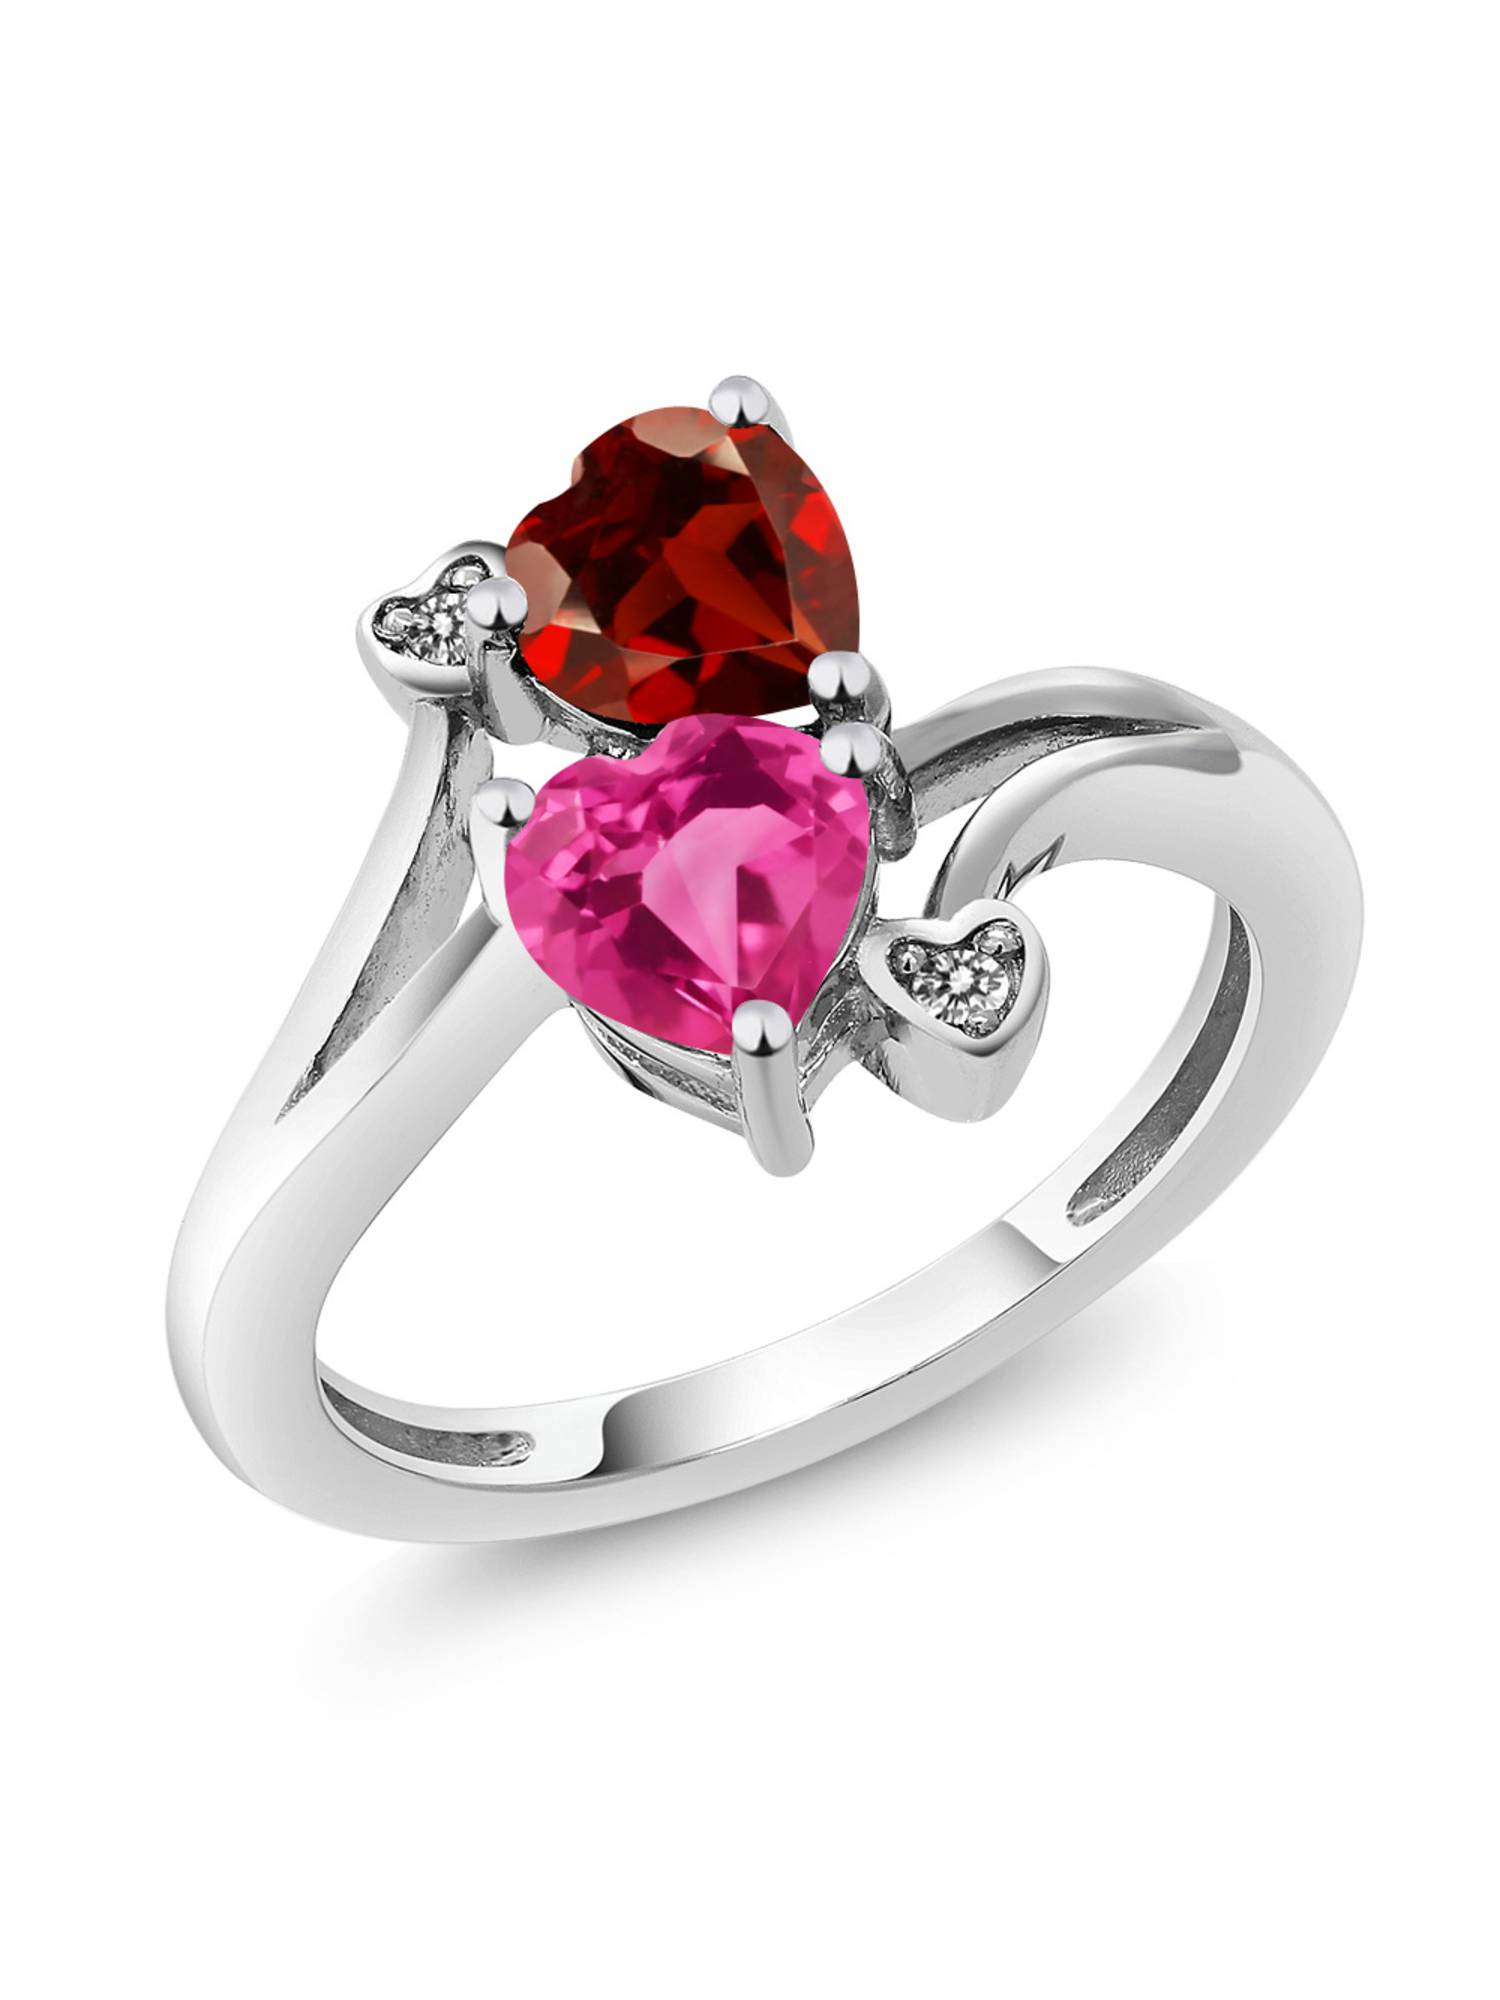 1.73 Ct Heart Shape Pink Created Sapphire Red Garnet 925 Sterling Silver Ring by